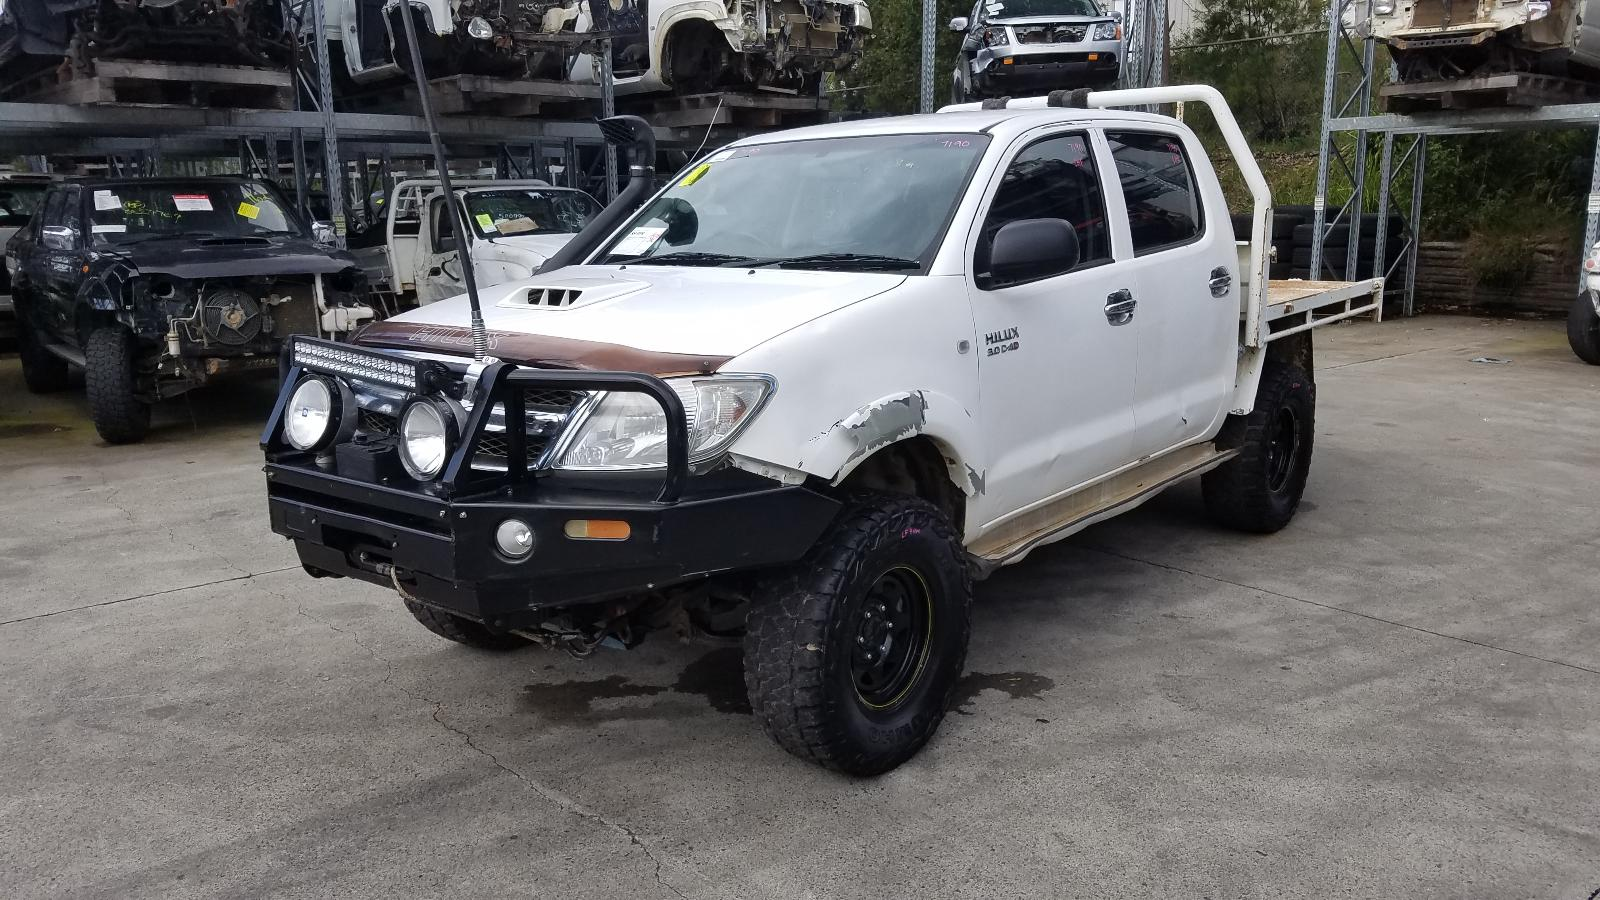 Image for a Toyota Hilux 2008 4 Door Pickup